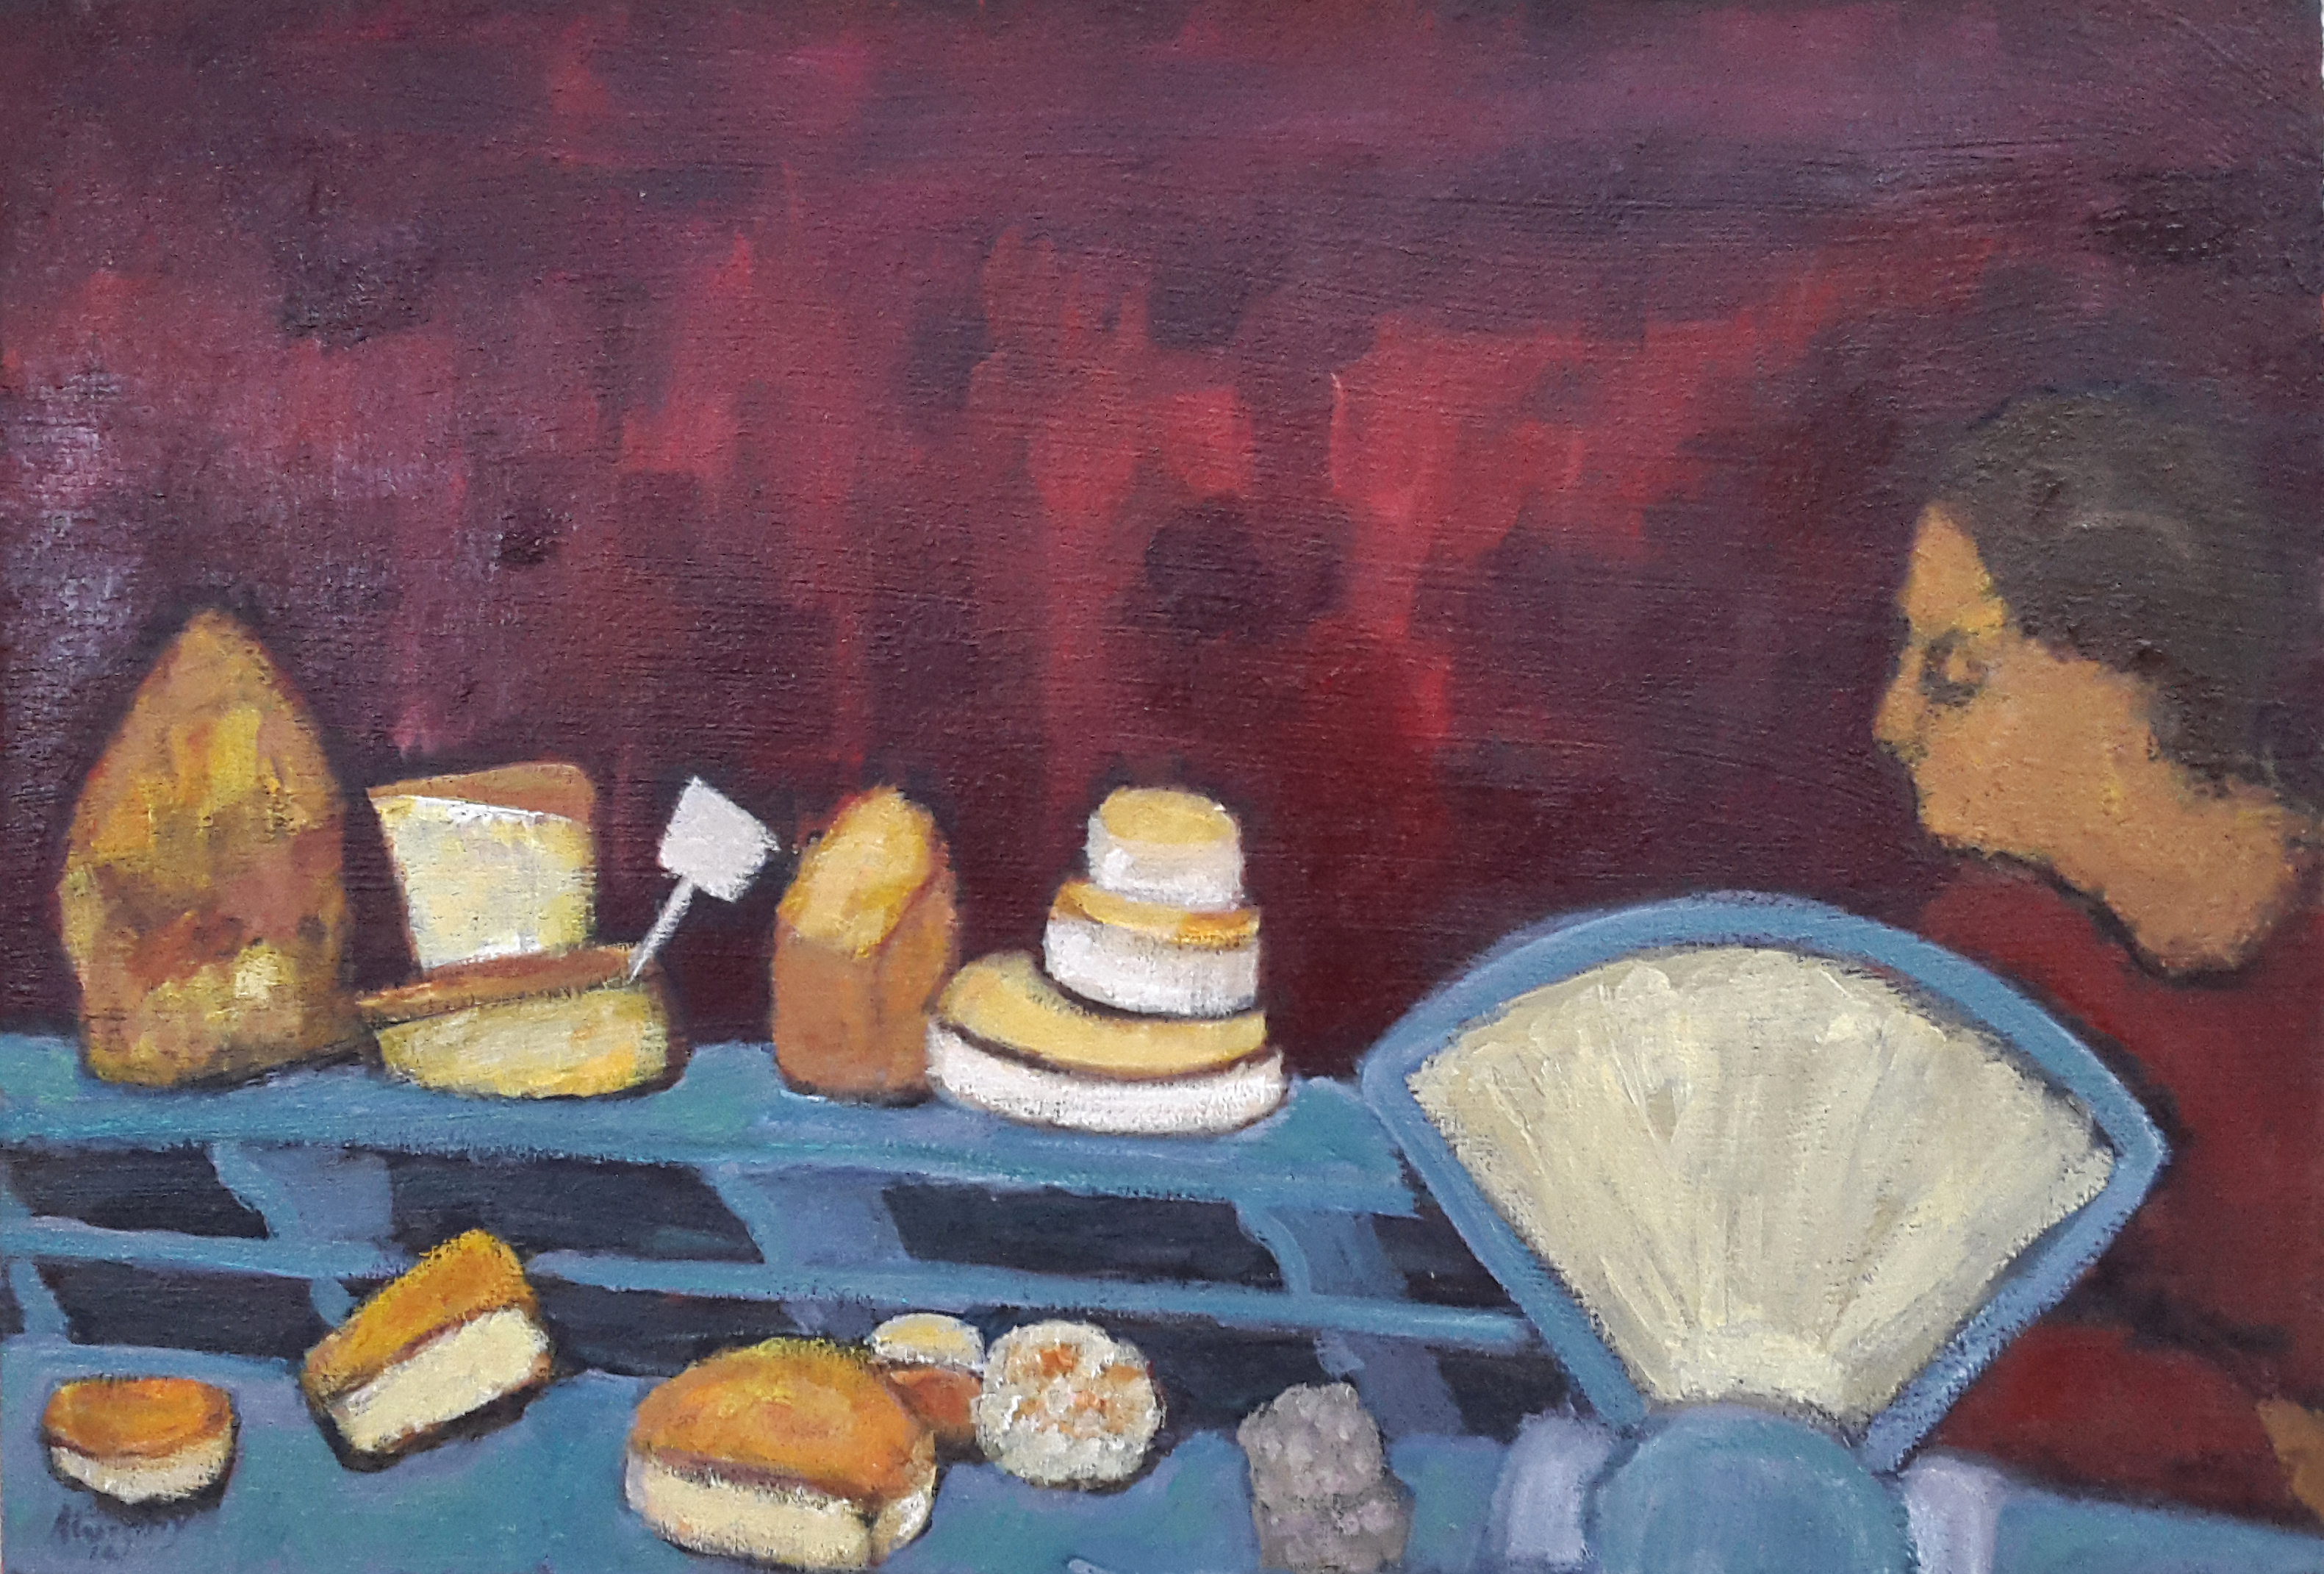 La Fromagerie 55 x 38 cm oil on canvas